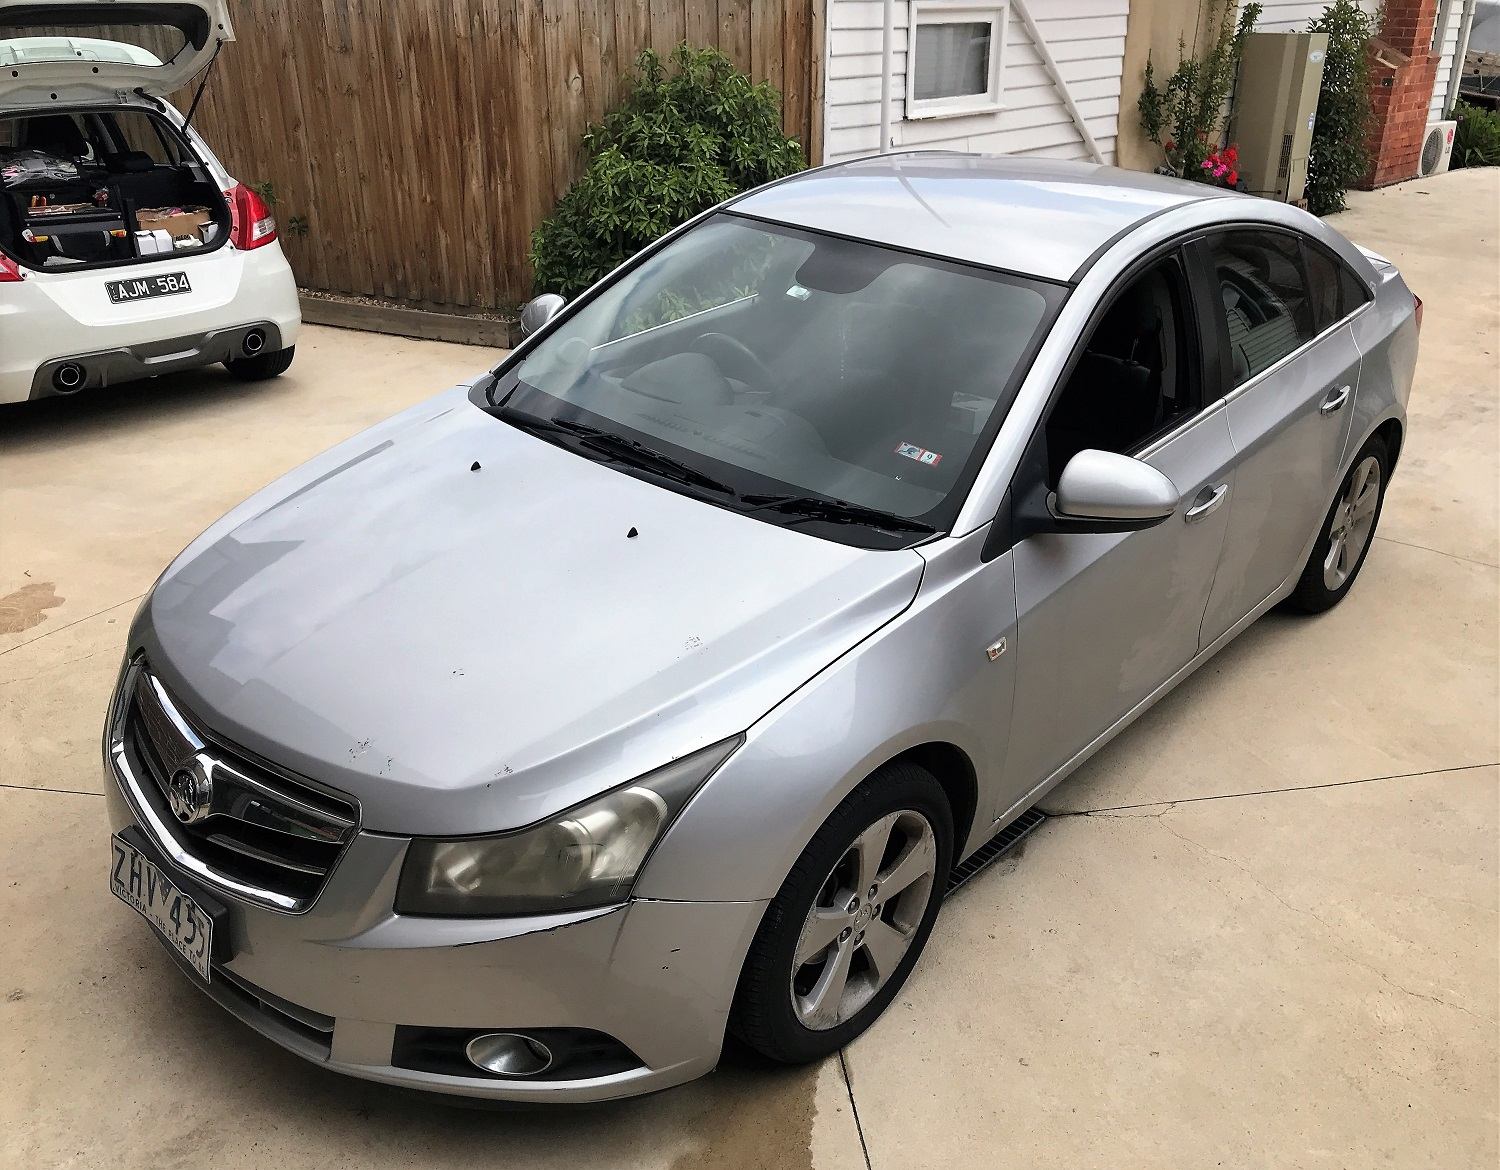 Picture of Lebnen's 2009 Holden Cruze